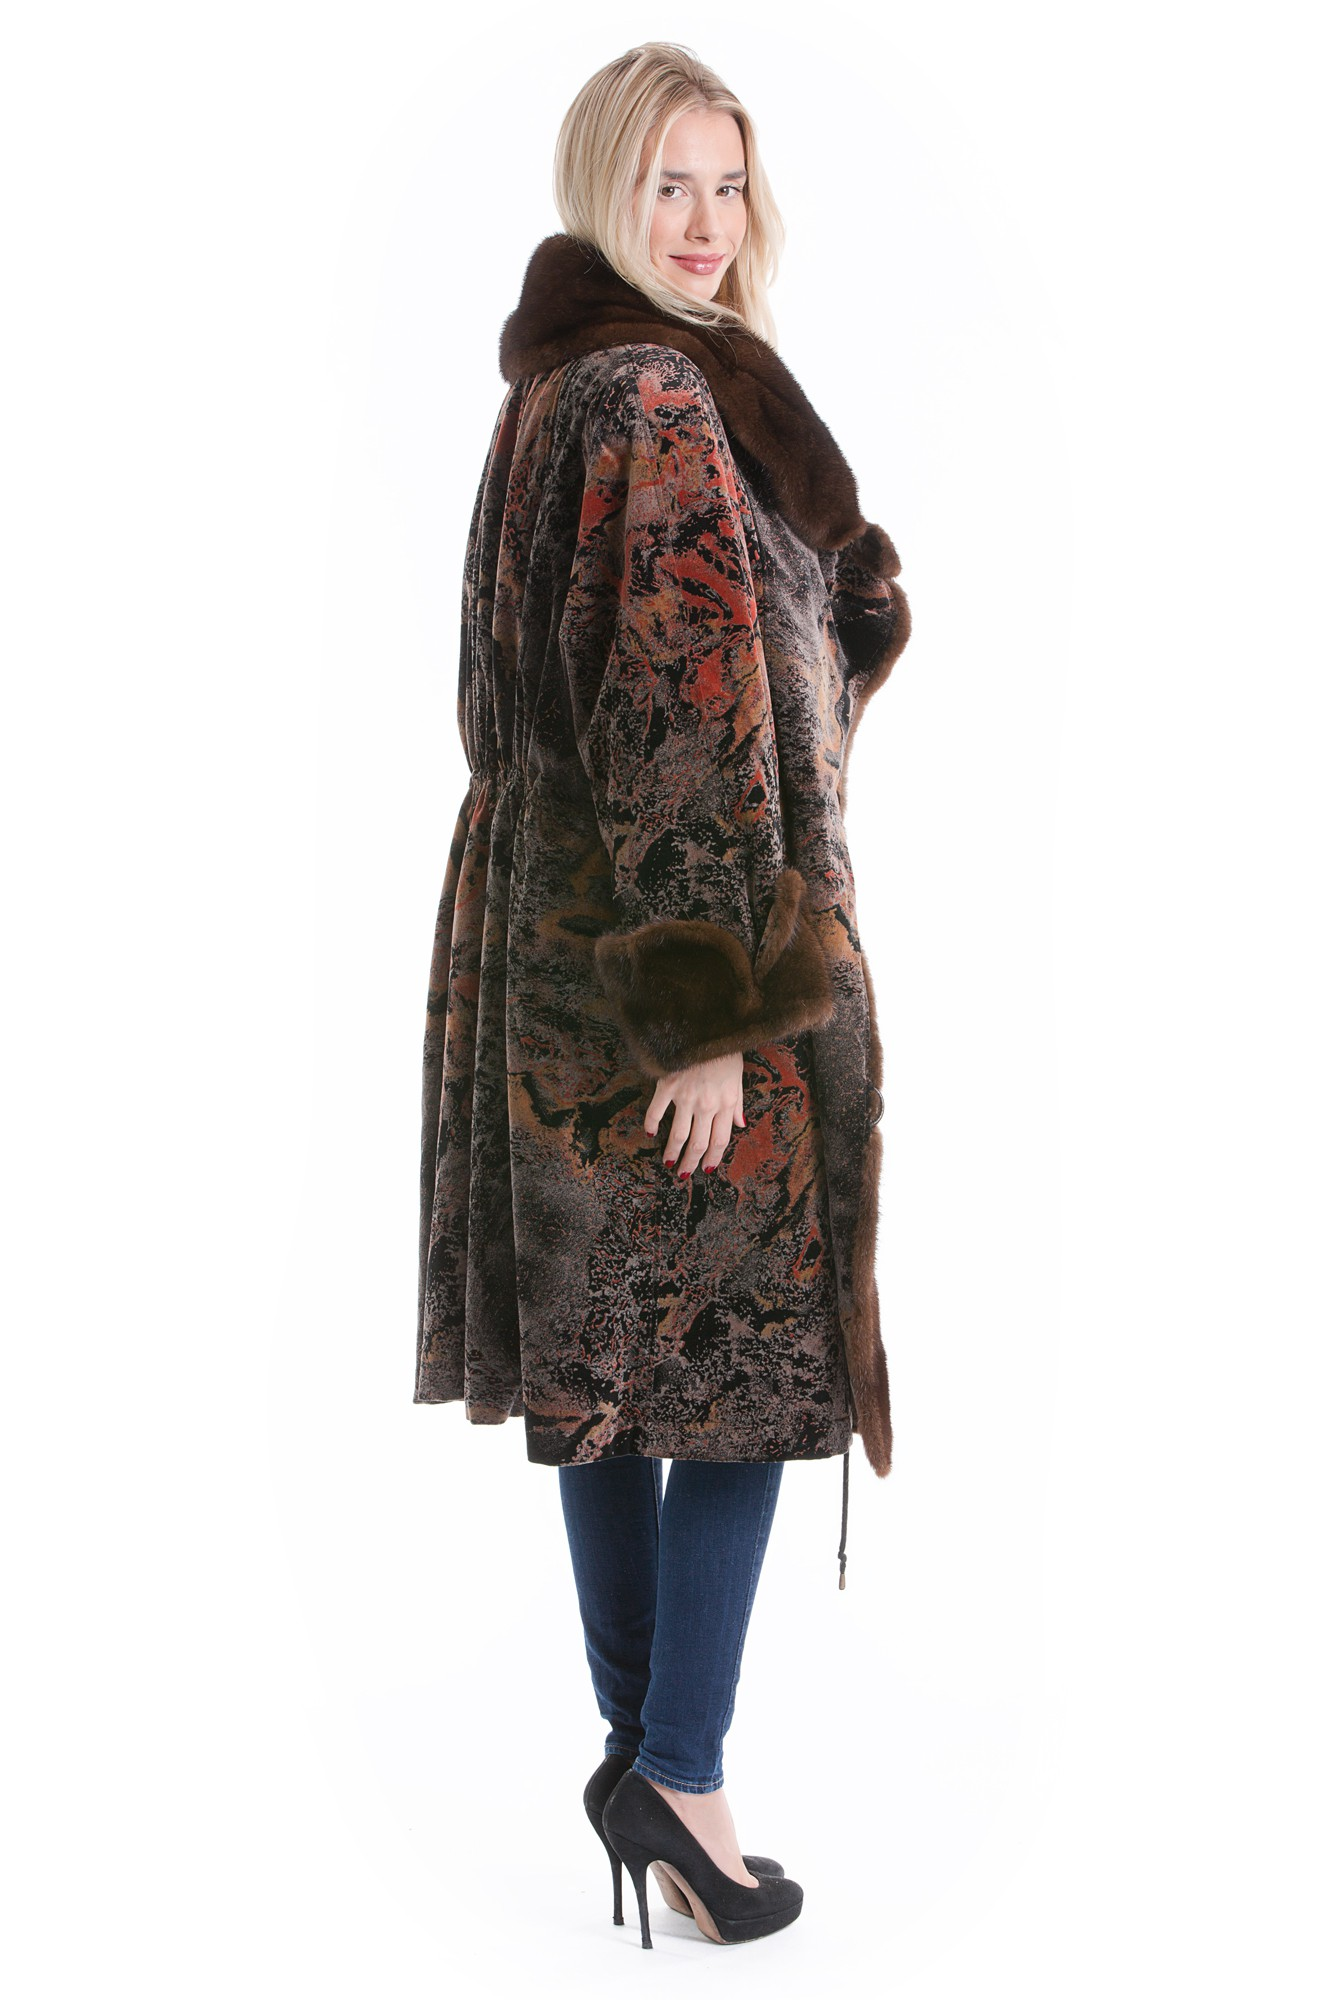 Buy Luxury Fabric Coat Fur Fashion Look Fur Luxury Style Online At Your Furs Online Shop